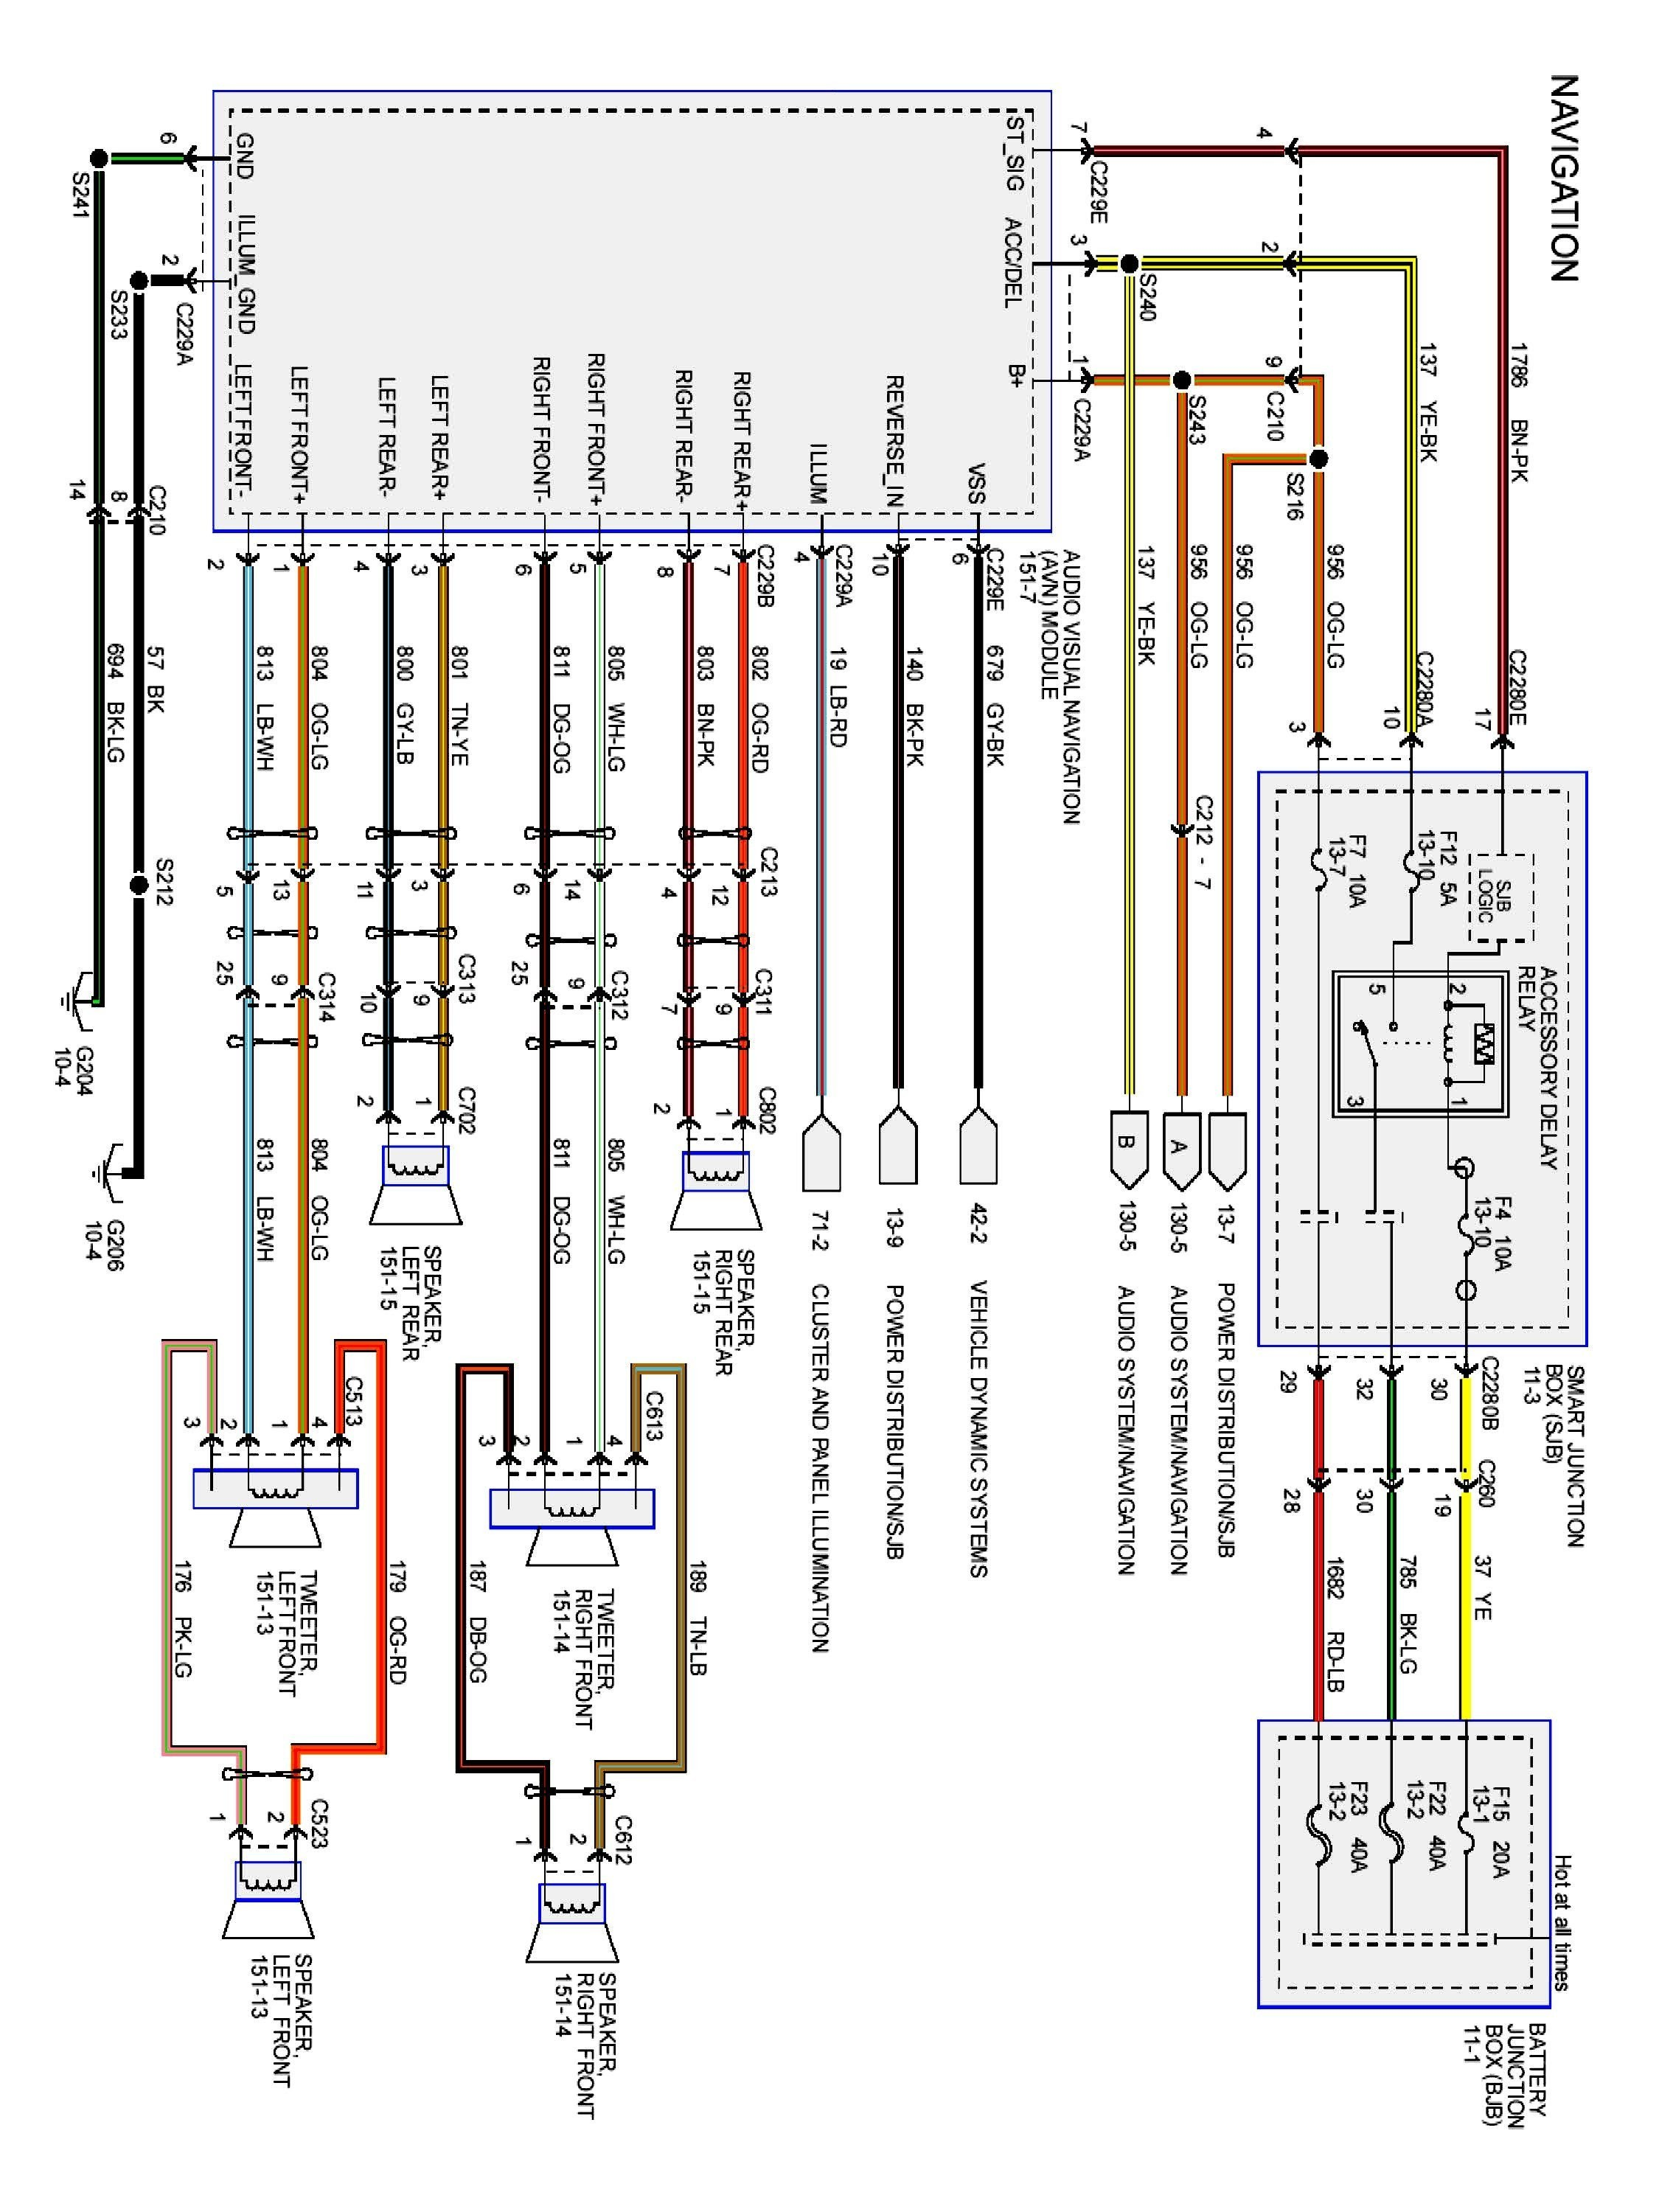 2006 Ford Fusion Engine Diagram F350 Fuse Box Head Unit Wiring Harness New Stereo Coachedby Of